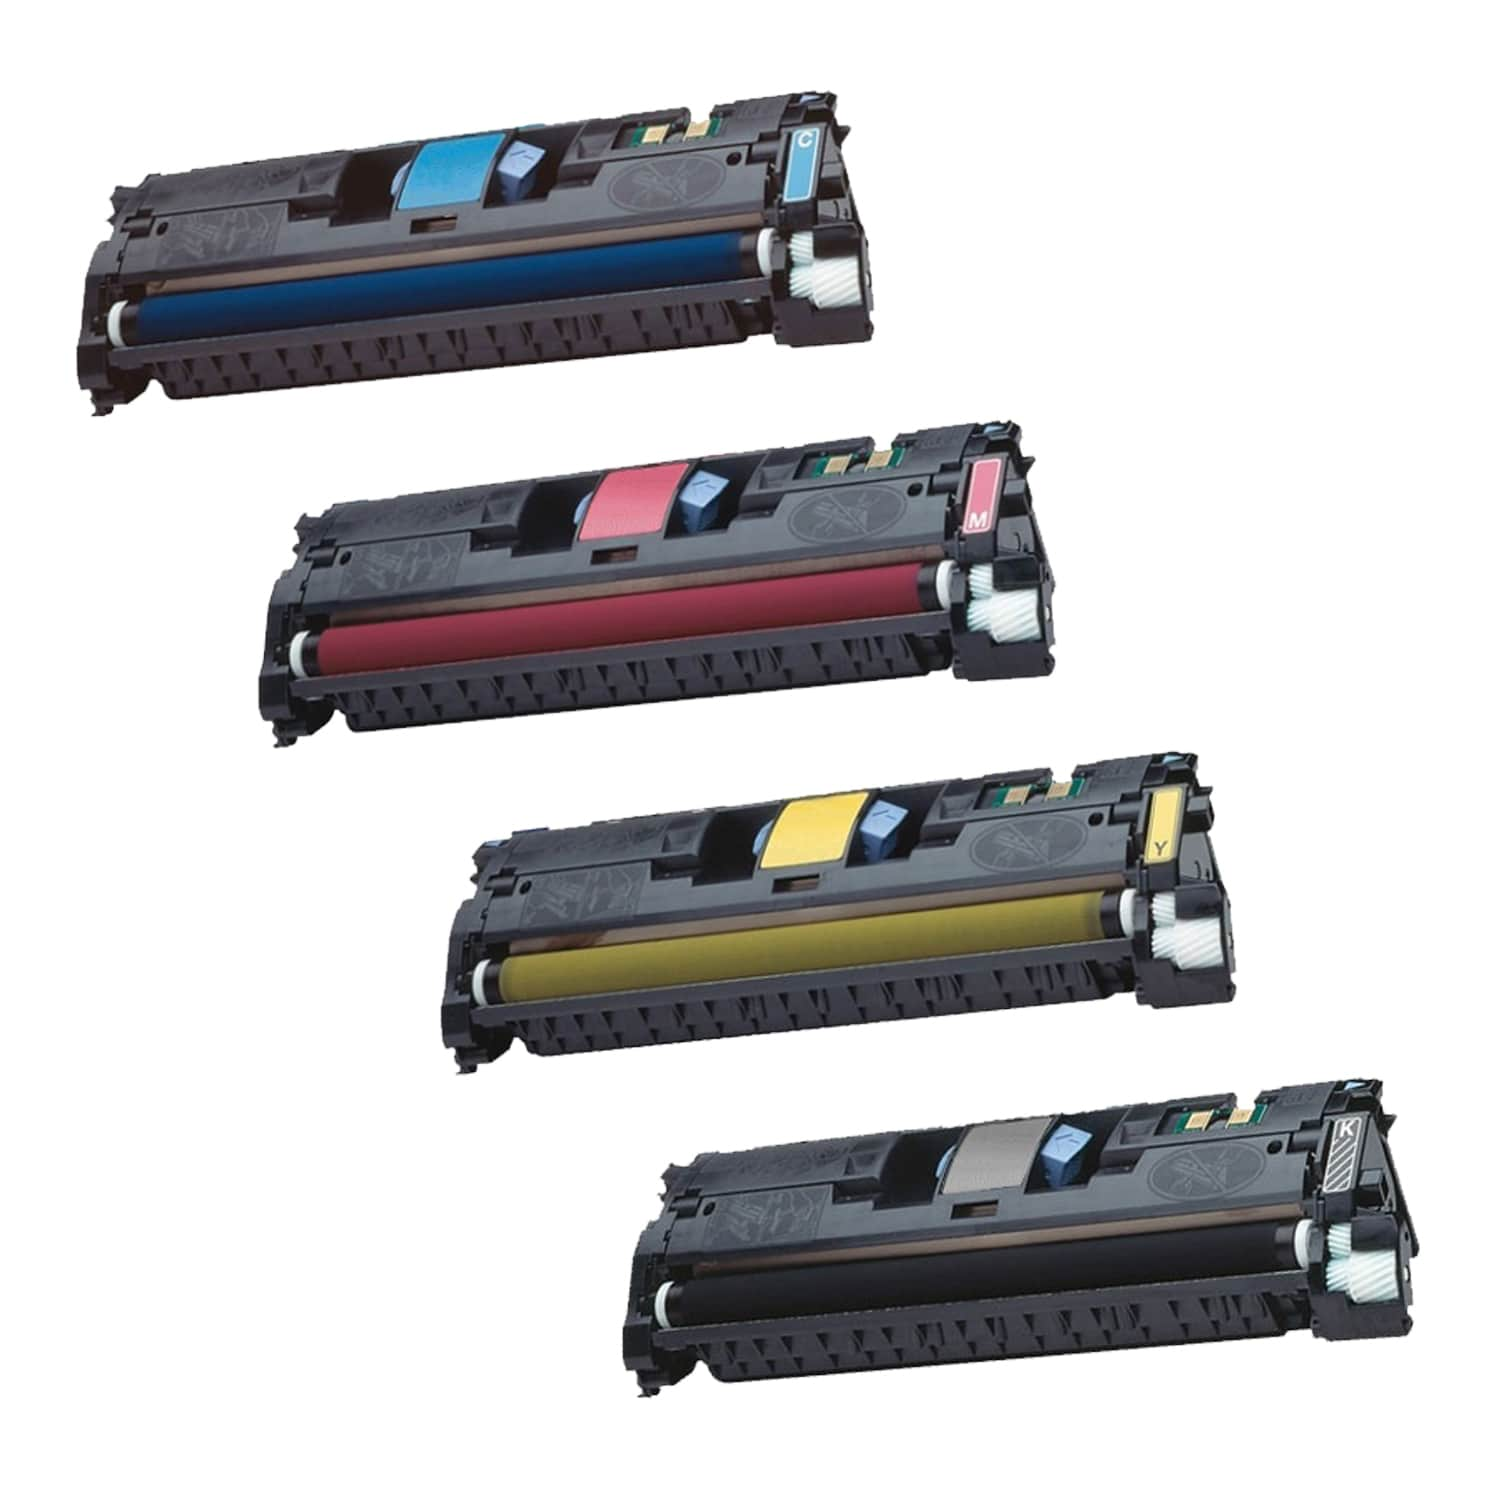 Remanufactured HP 121A Toner Pack - 4 Cartridges